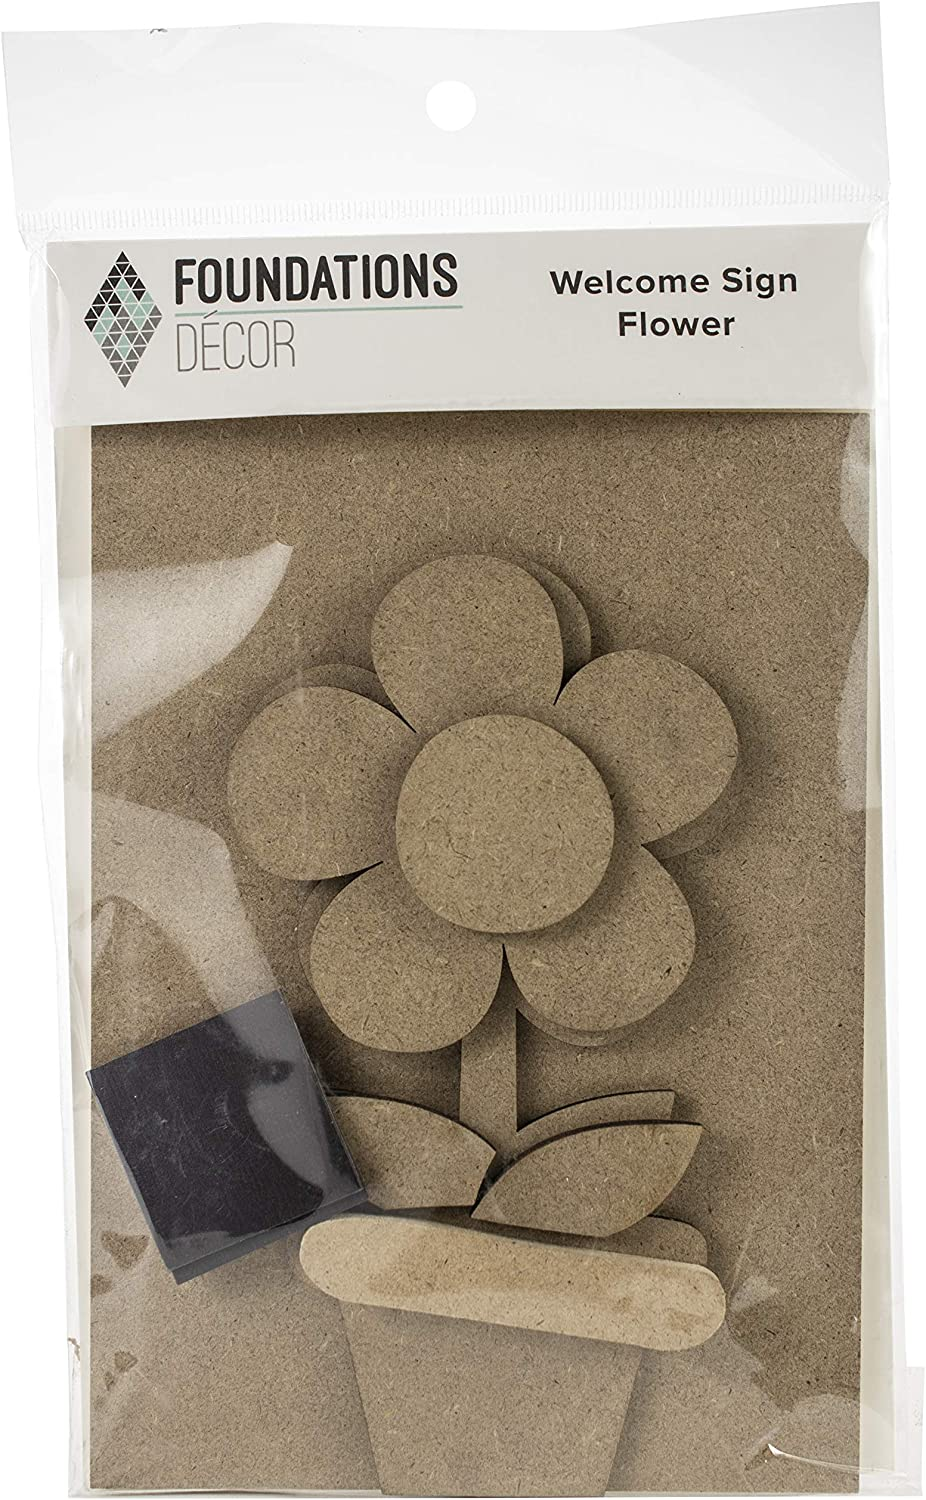 Foundations Décor, Welcome Sign Self Adhesive Magnets, DIY Home Decorations, Craft Kit - Flower